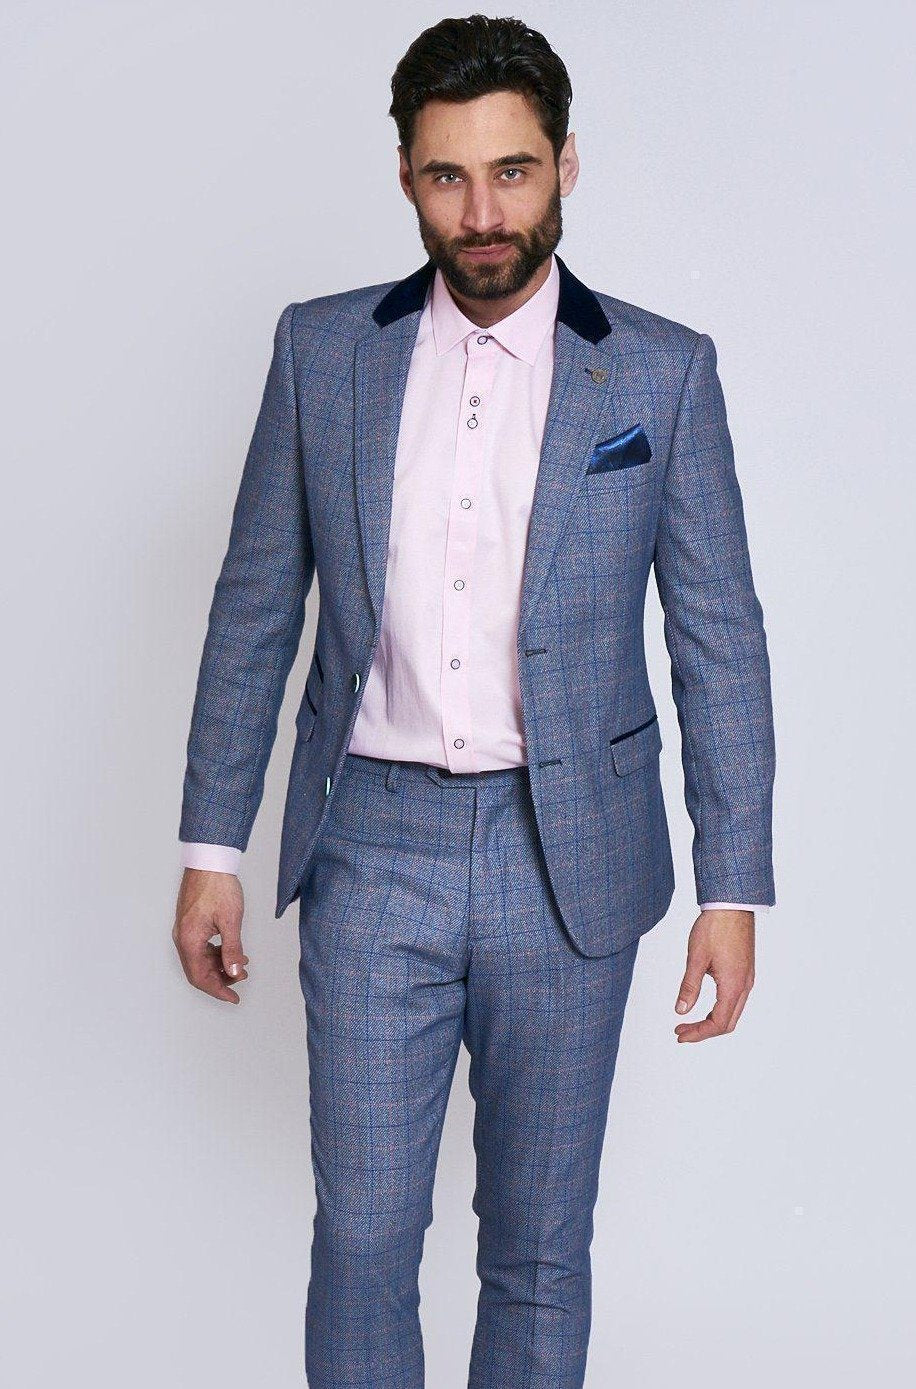 Hilton Blue Tweed Two Piece Suit By Award Winning Menswear Designer Marc Darcy